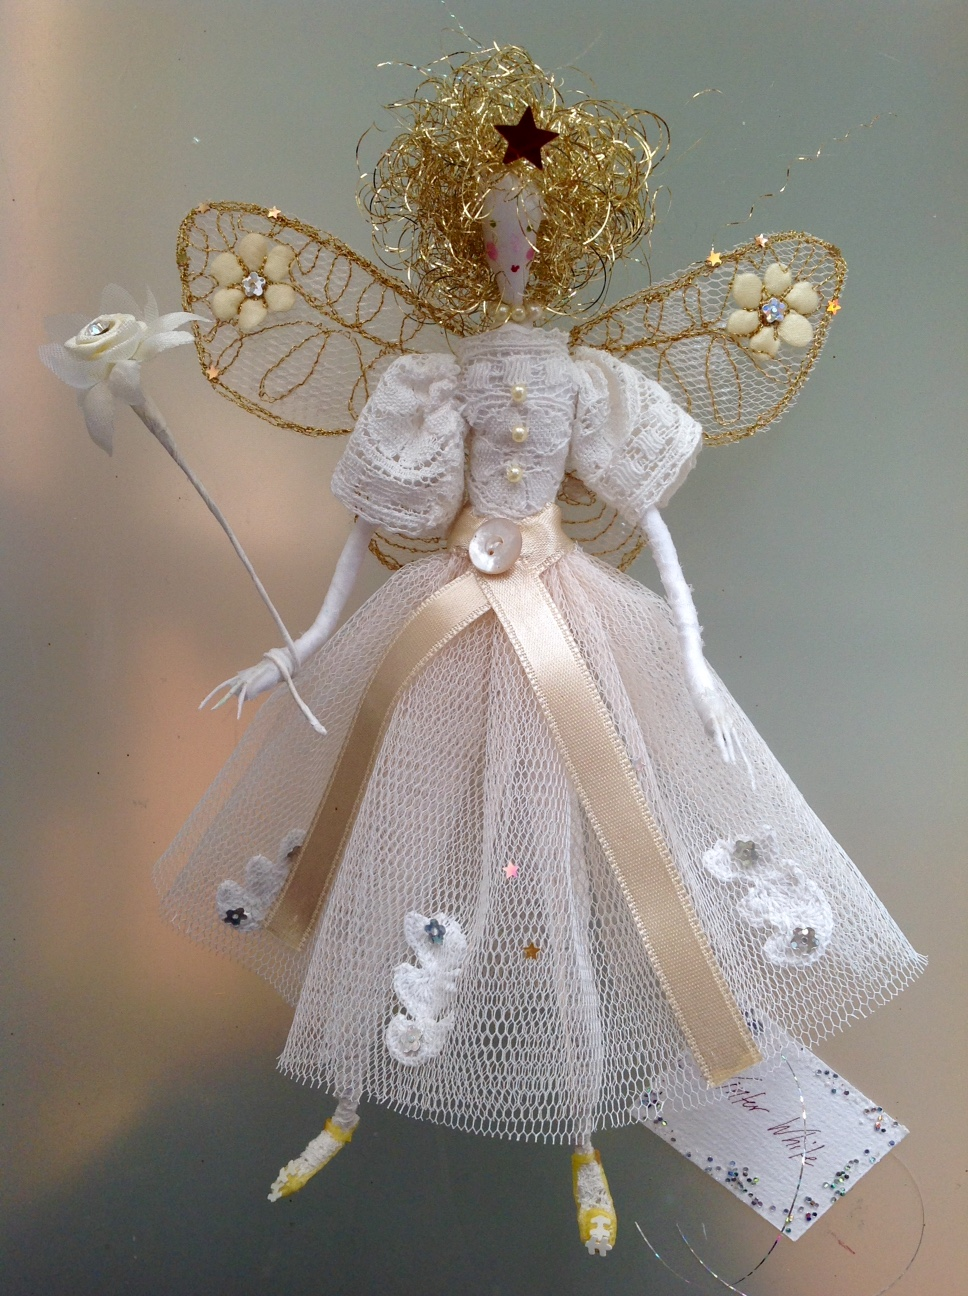 WINTER WHITE A 21cm fairy with a silk painted face , wearing vintage lace and a stiff net skirt embellished with lace and sequins. She has embroidered wings , an orange/gold star in her hair and she is holding a diamante flower wand. She comes in an organza bag with dried flower petals in it. £45 plus £3.50 p&p.